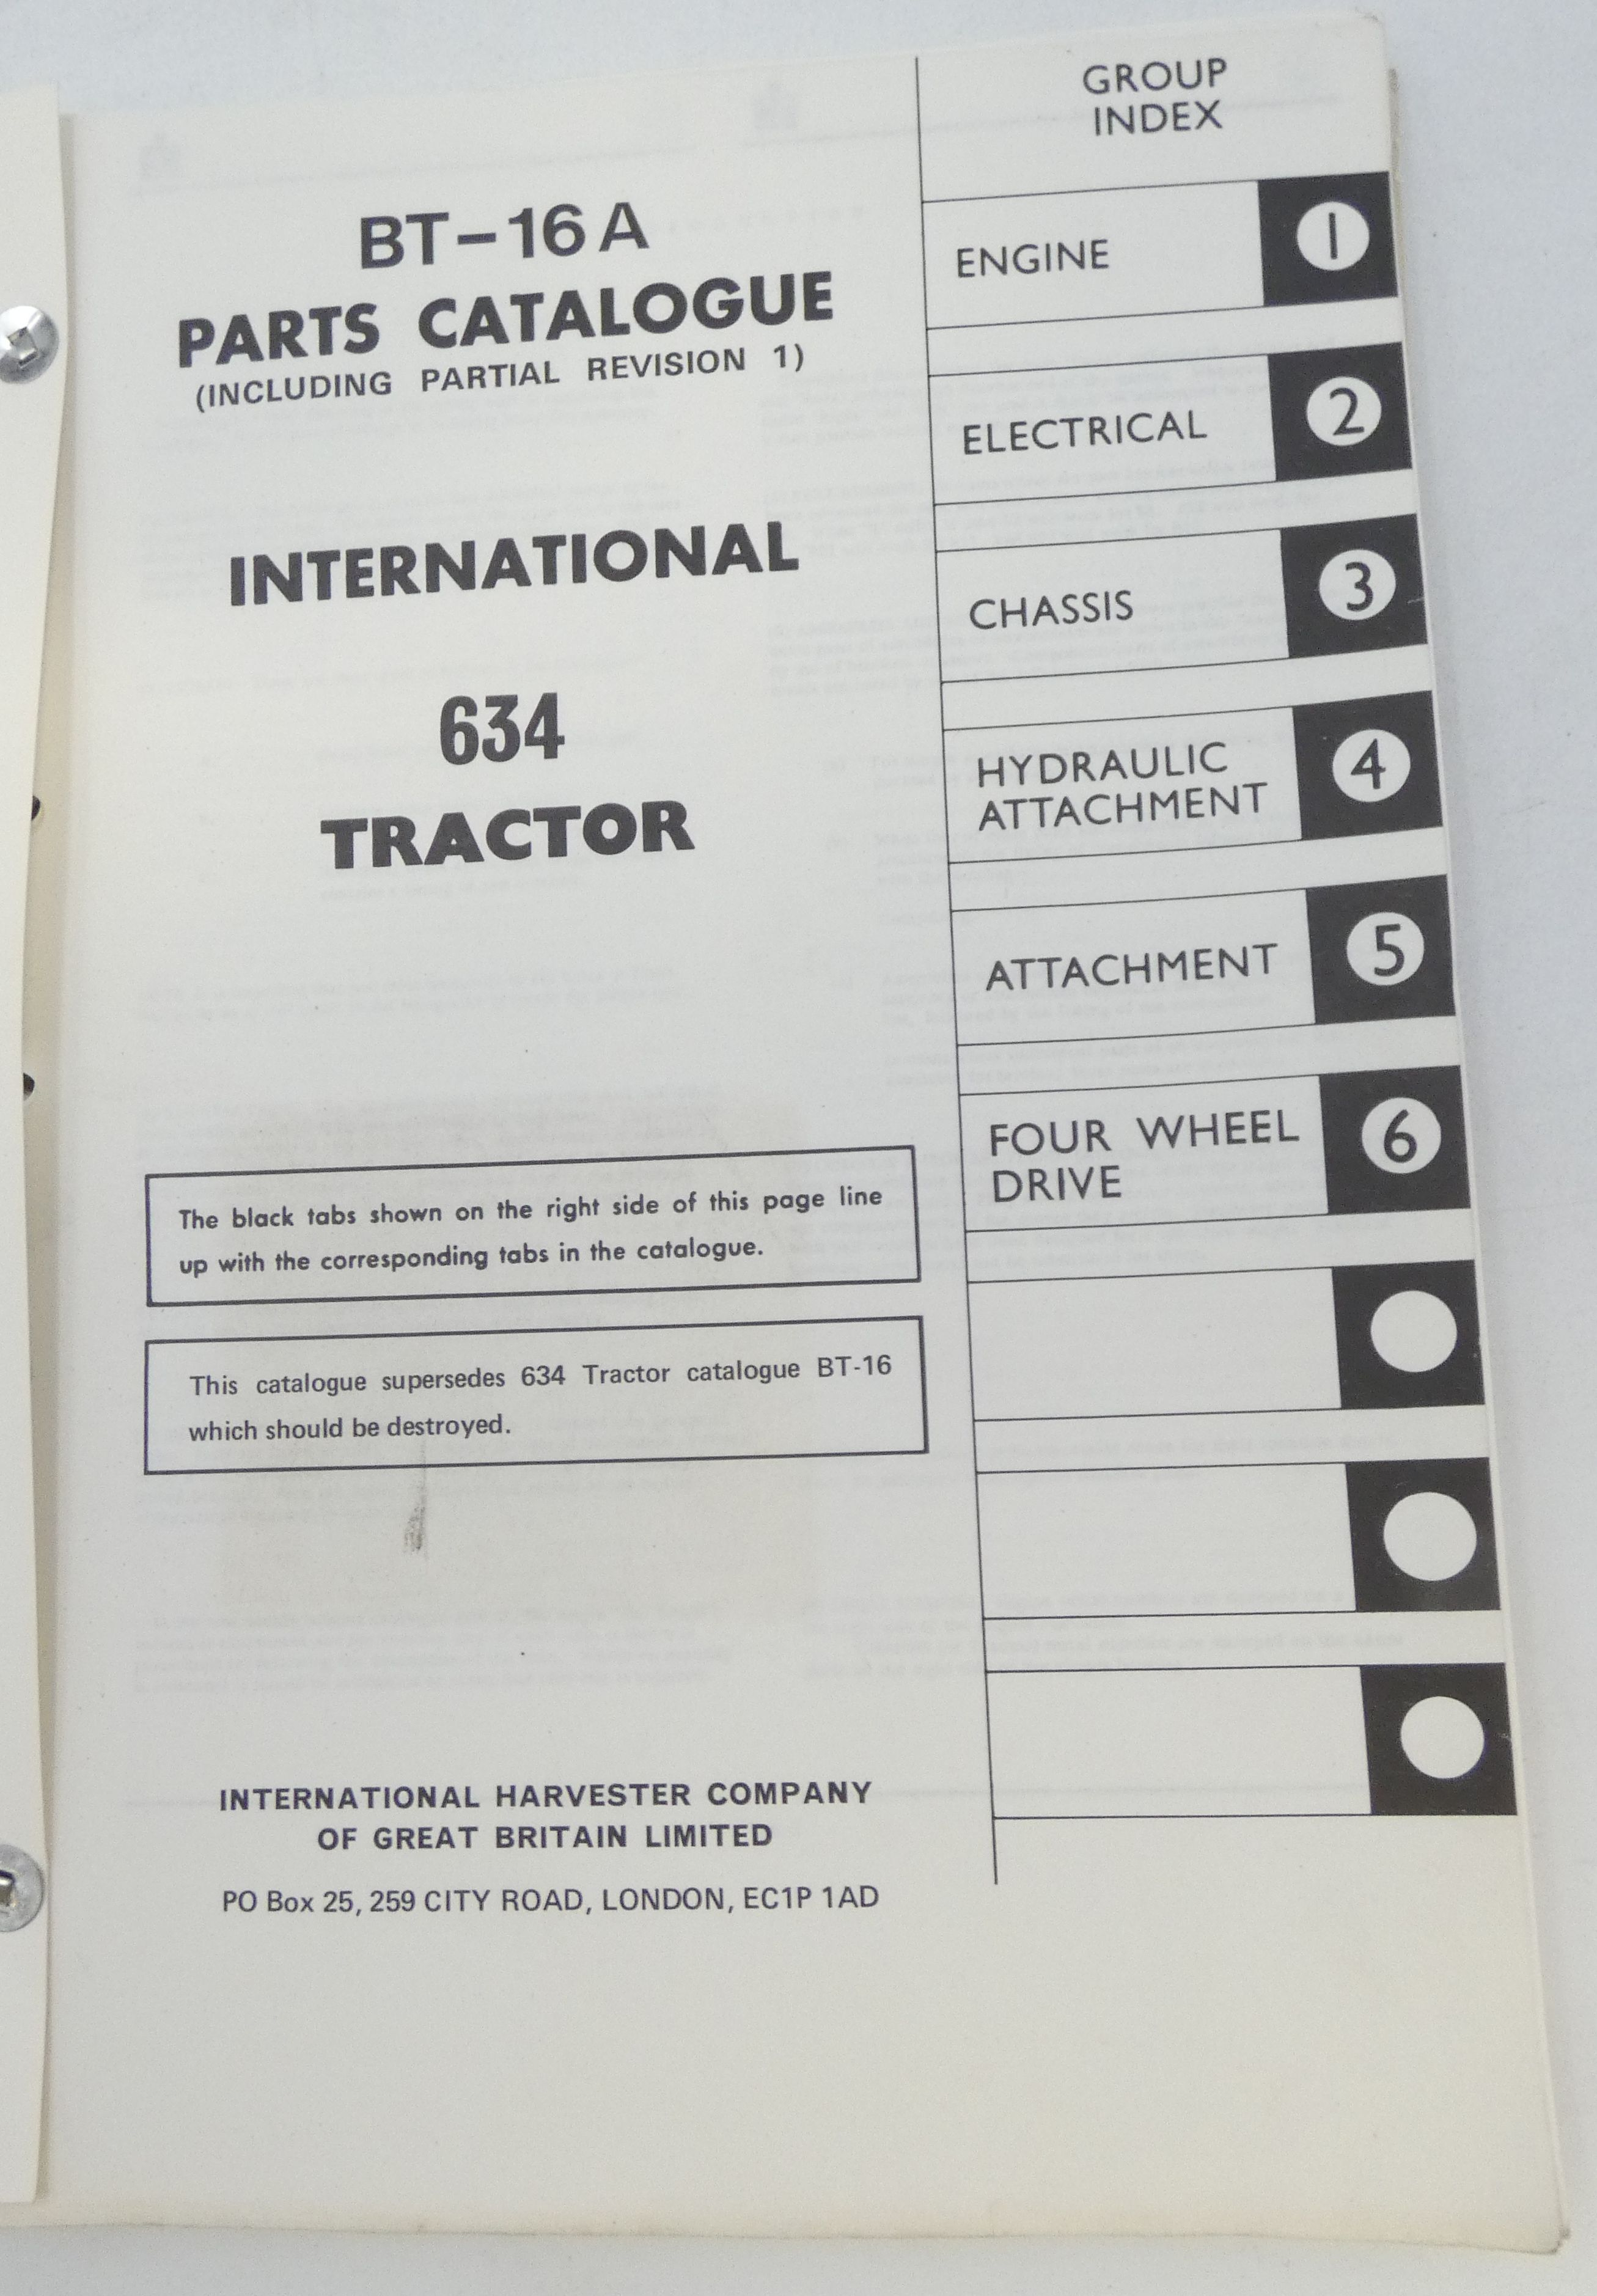 International 634 tractor parts catalogue